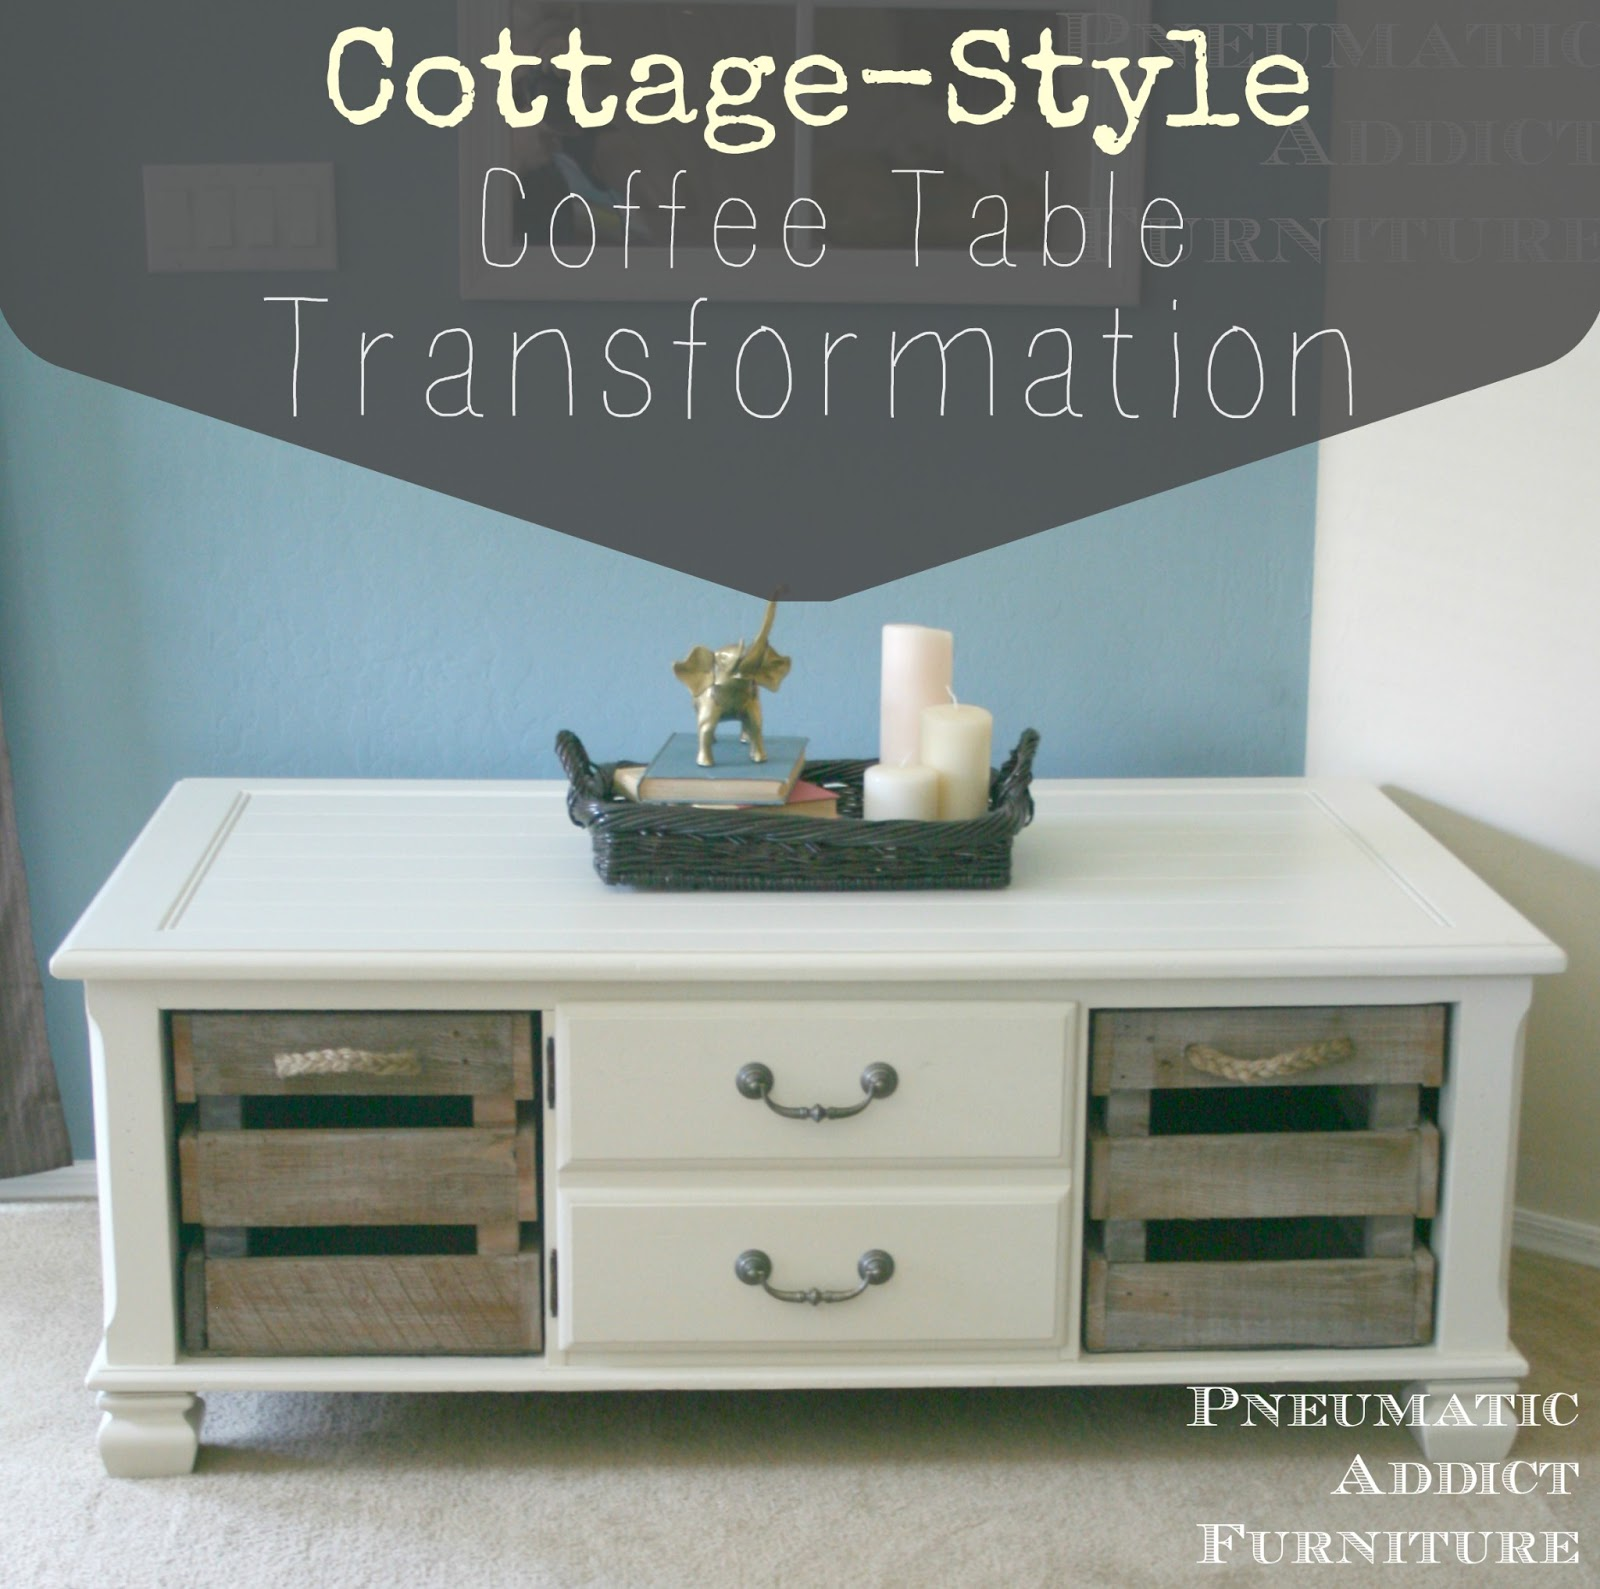 Pneumatic Addict Furniture: Cottage-Style Coffee Table Transformation